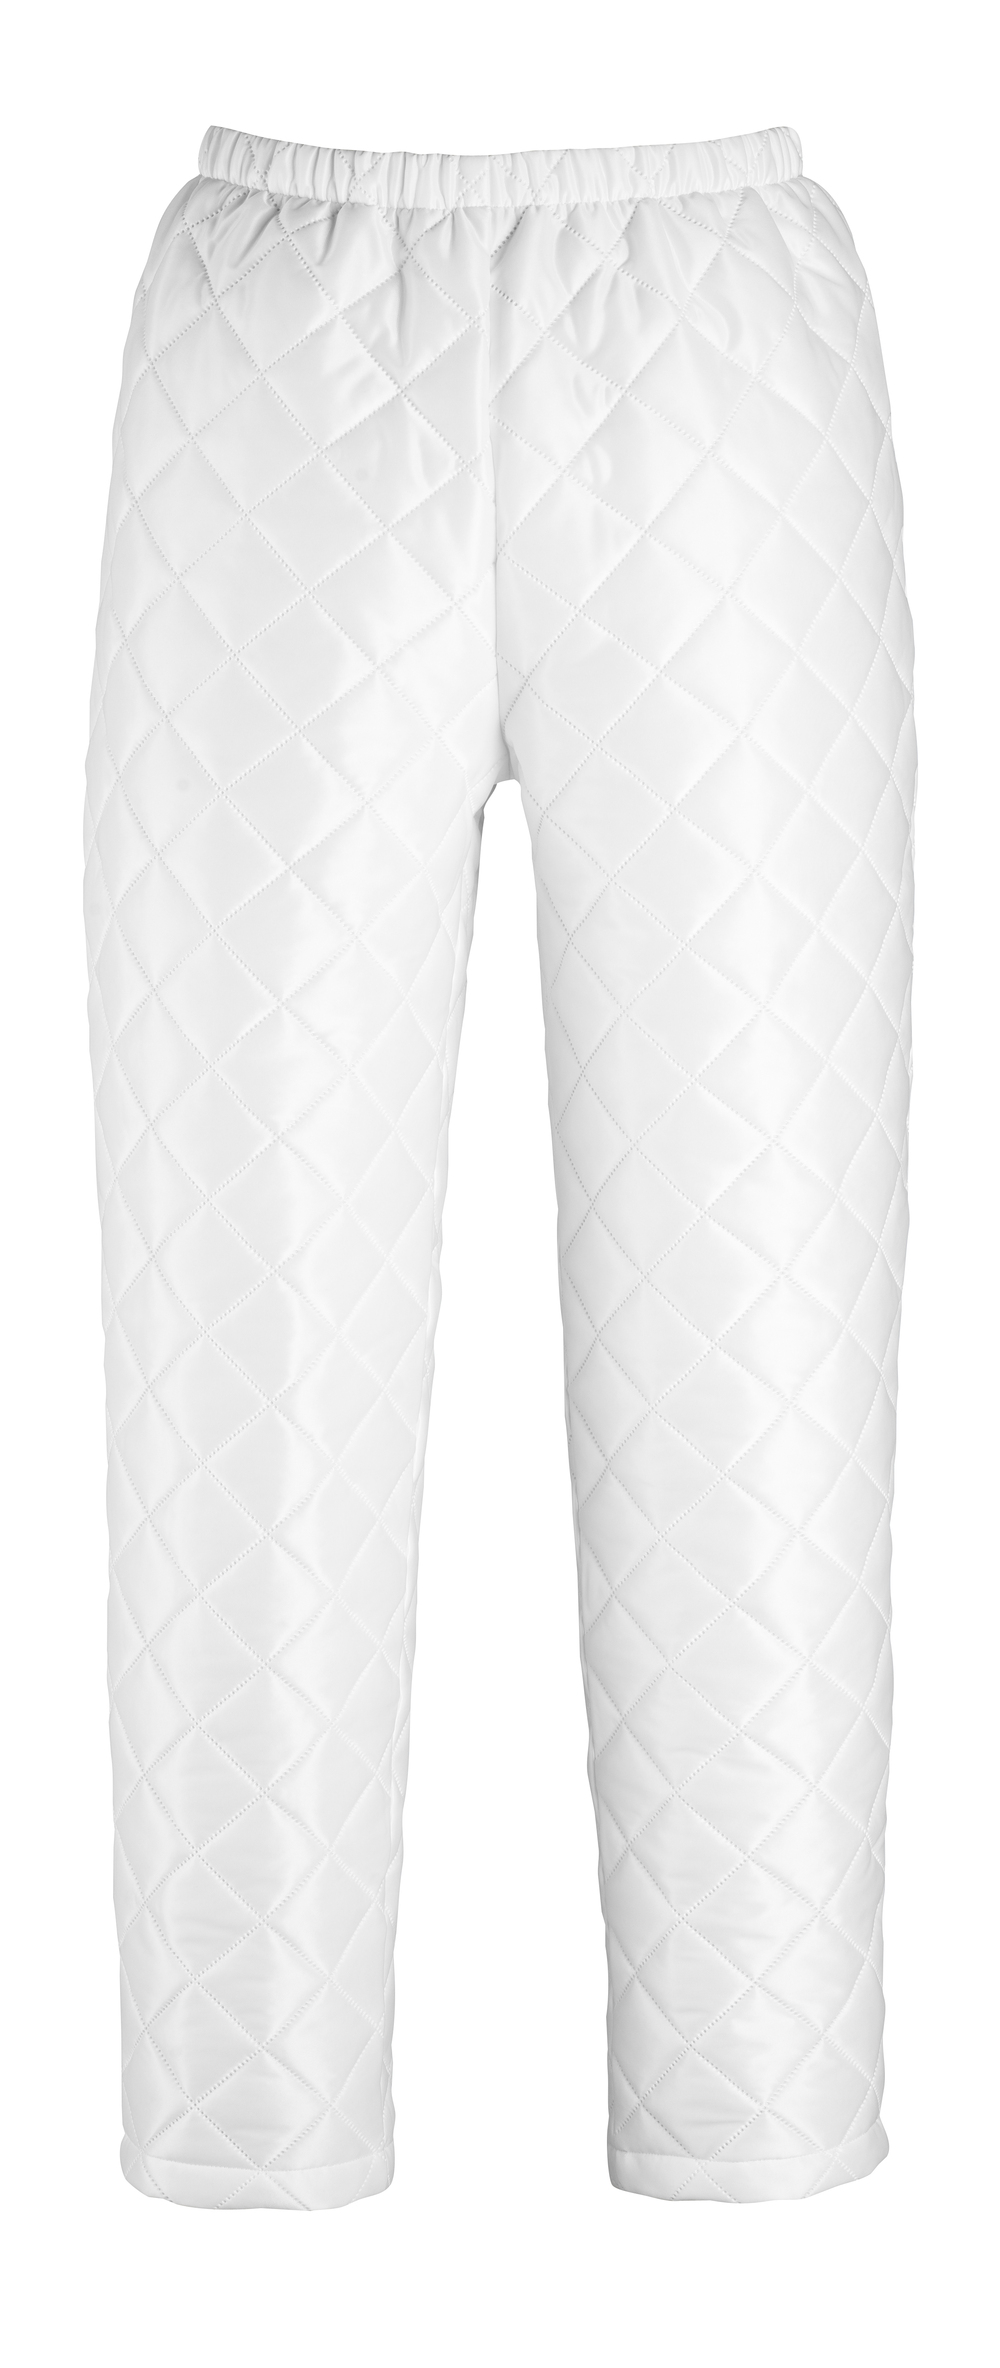 13578-707-06 Thermal Trousers - white